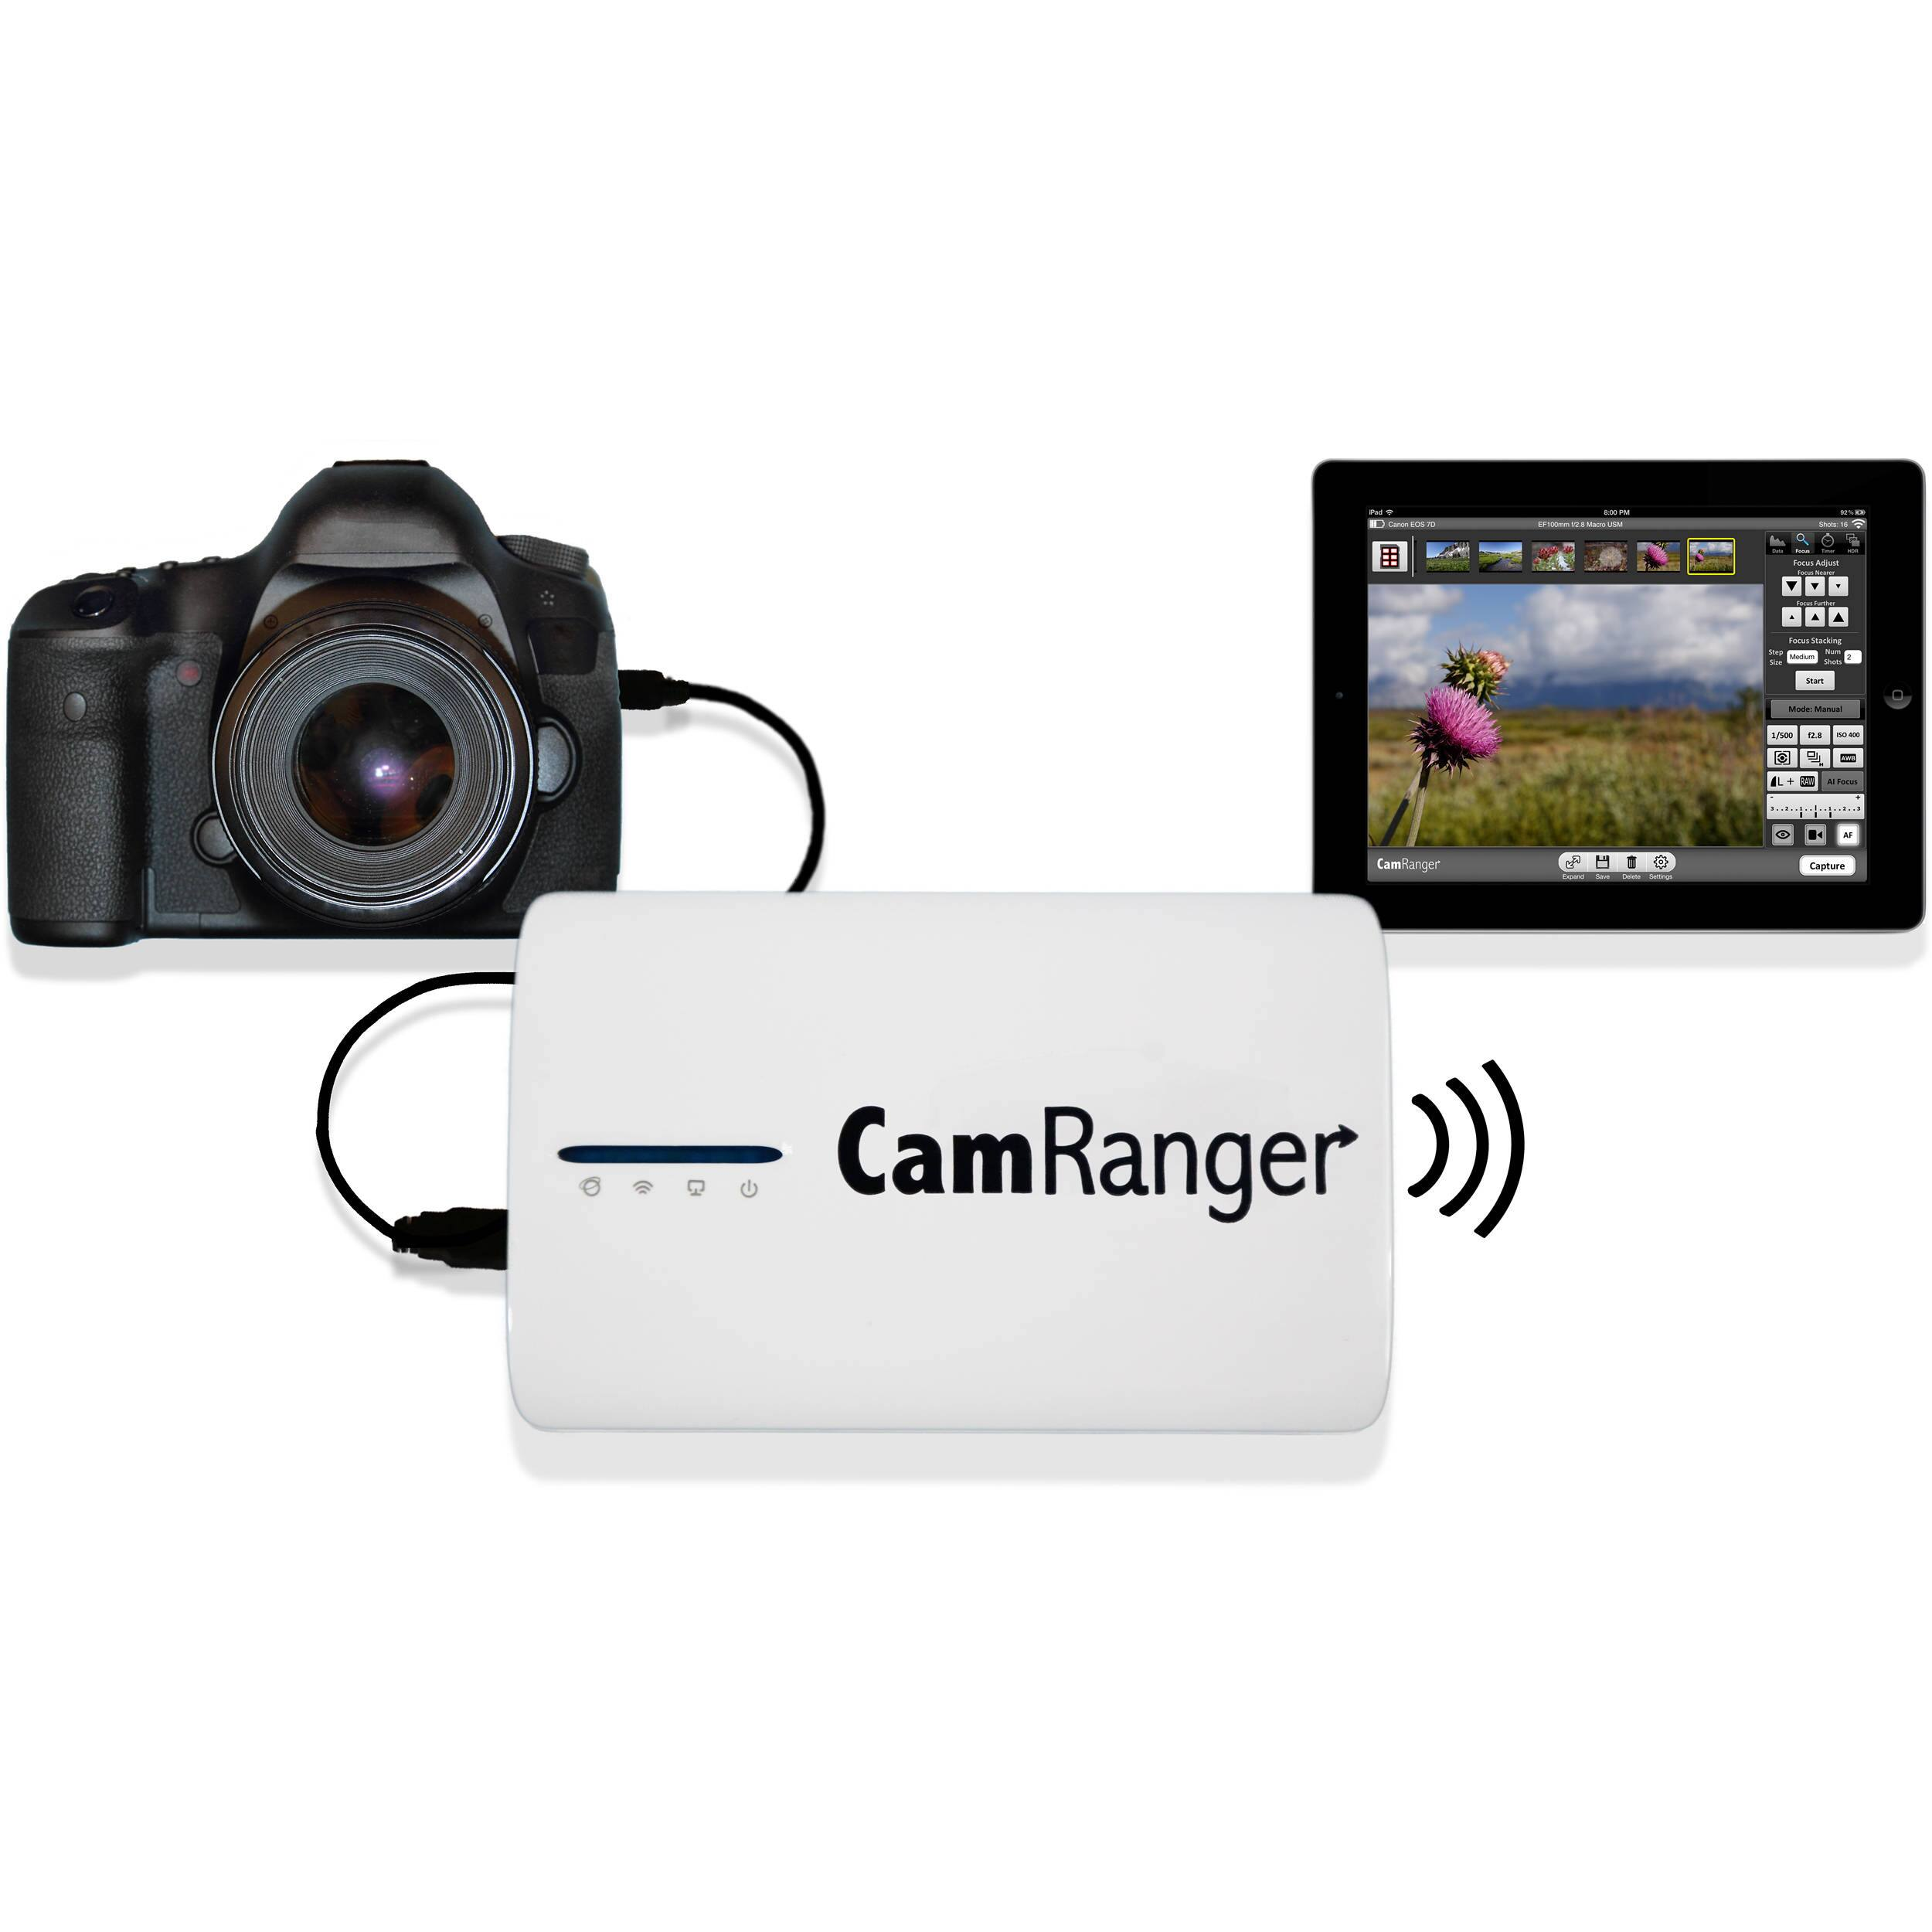 CamRanger Wireless Transmitter for Select Canon and Nikon DSLR Cameras [Without Mounting Solution] $199.99 @ B&H Photo w/ Free Shipping